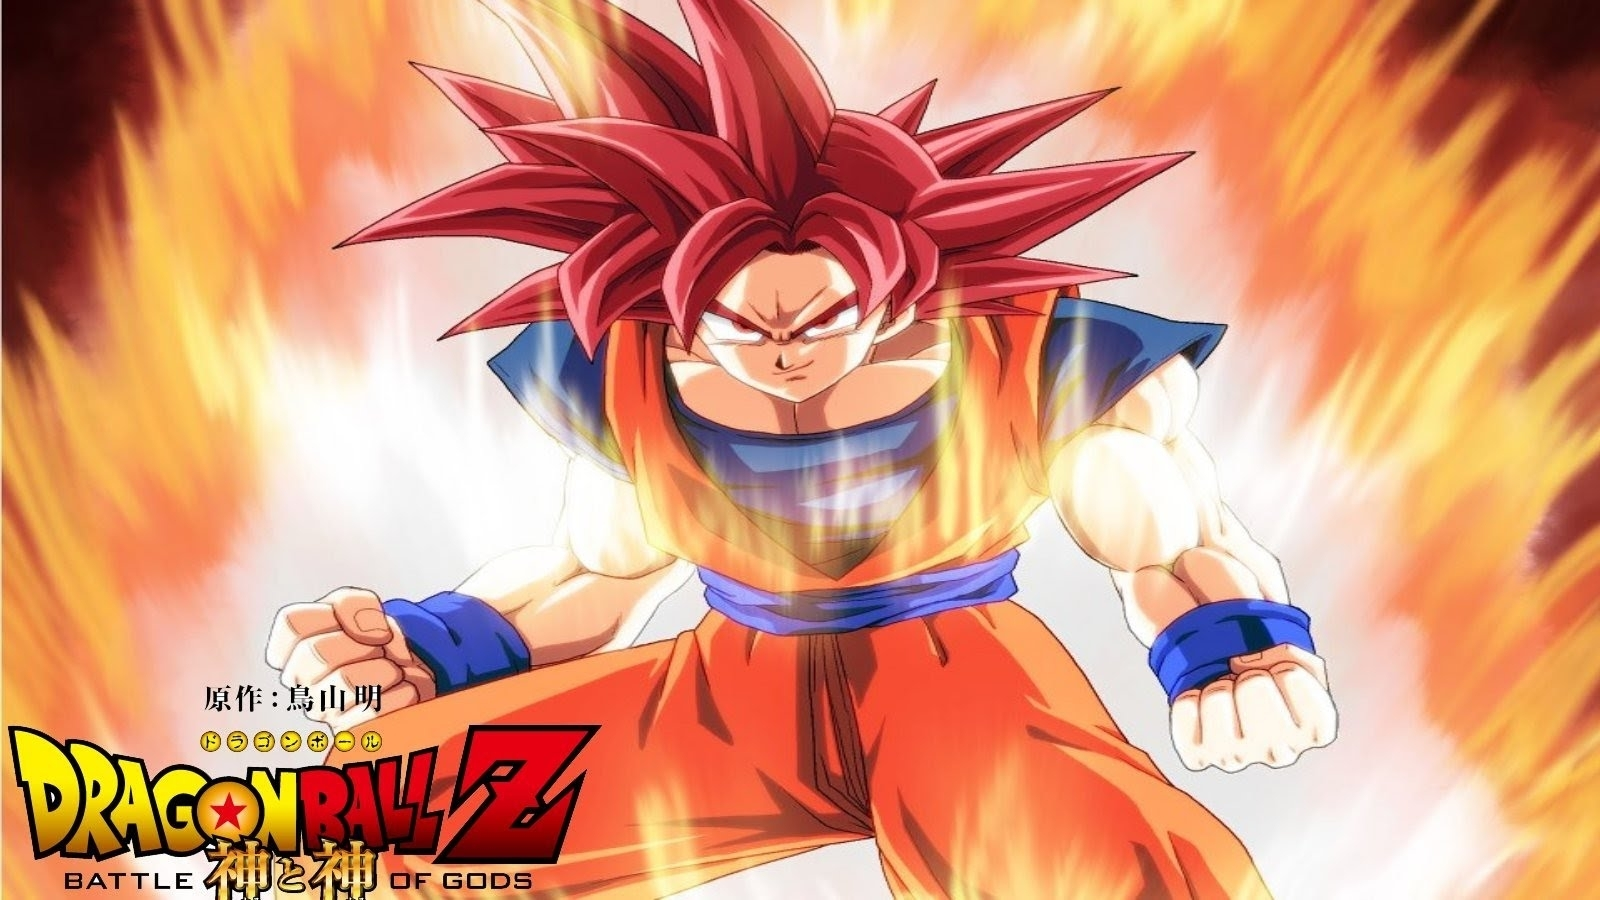 dragon ball z - battle of gods - super saiyan god goku, new battle